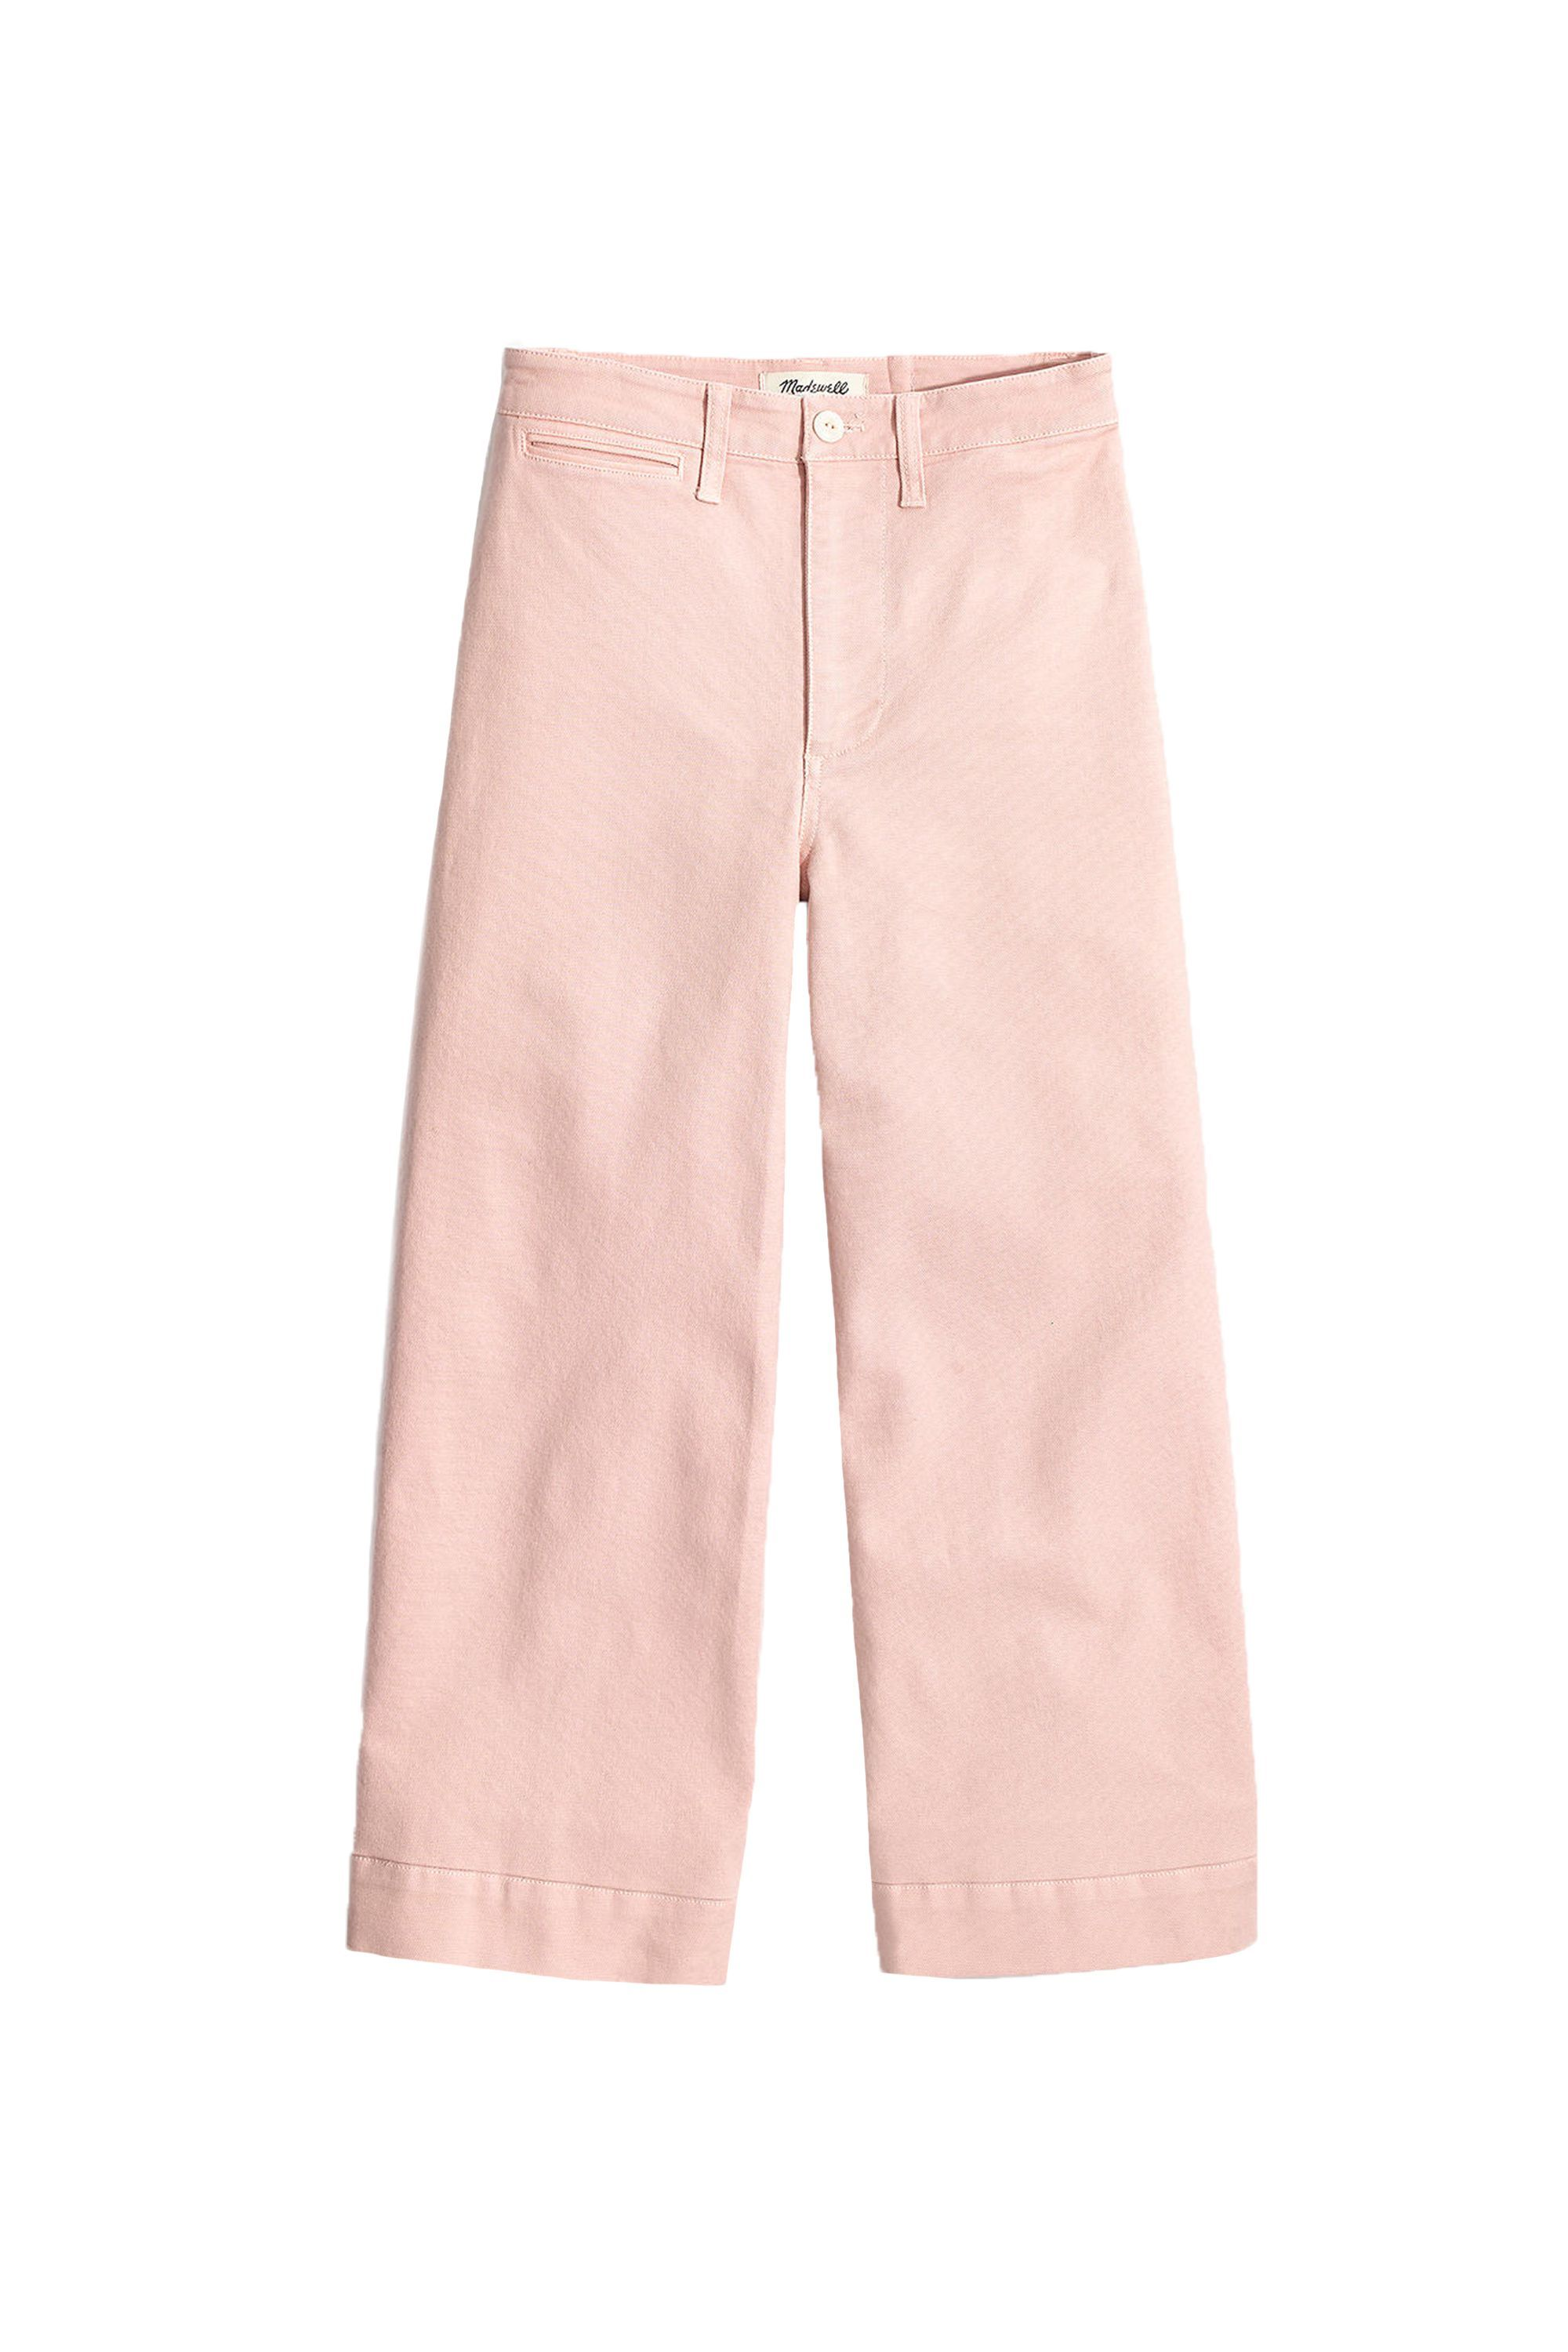 6ade3b5f5b 12 Pairs of Beach Pants That Will Get You Excited for Summer